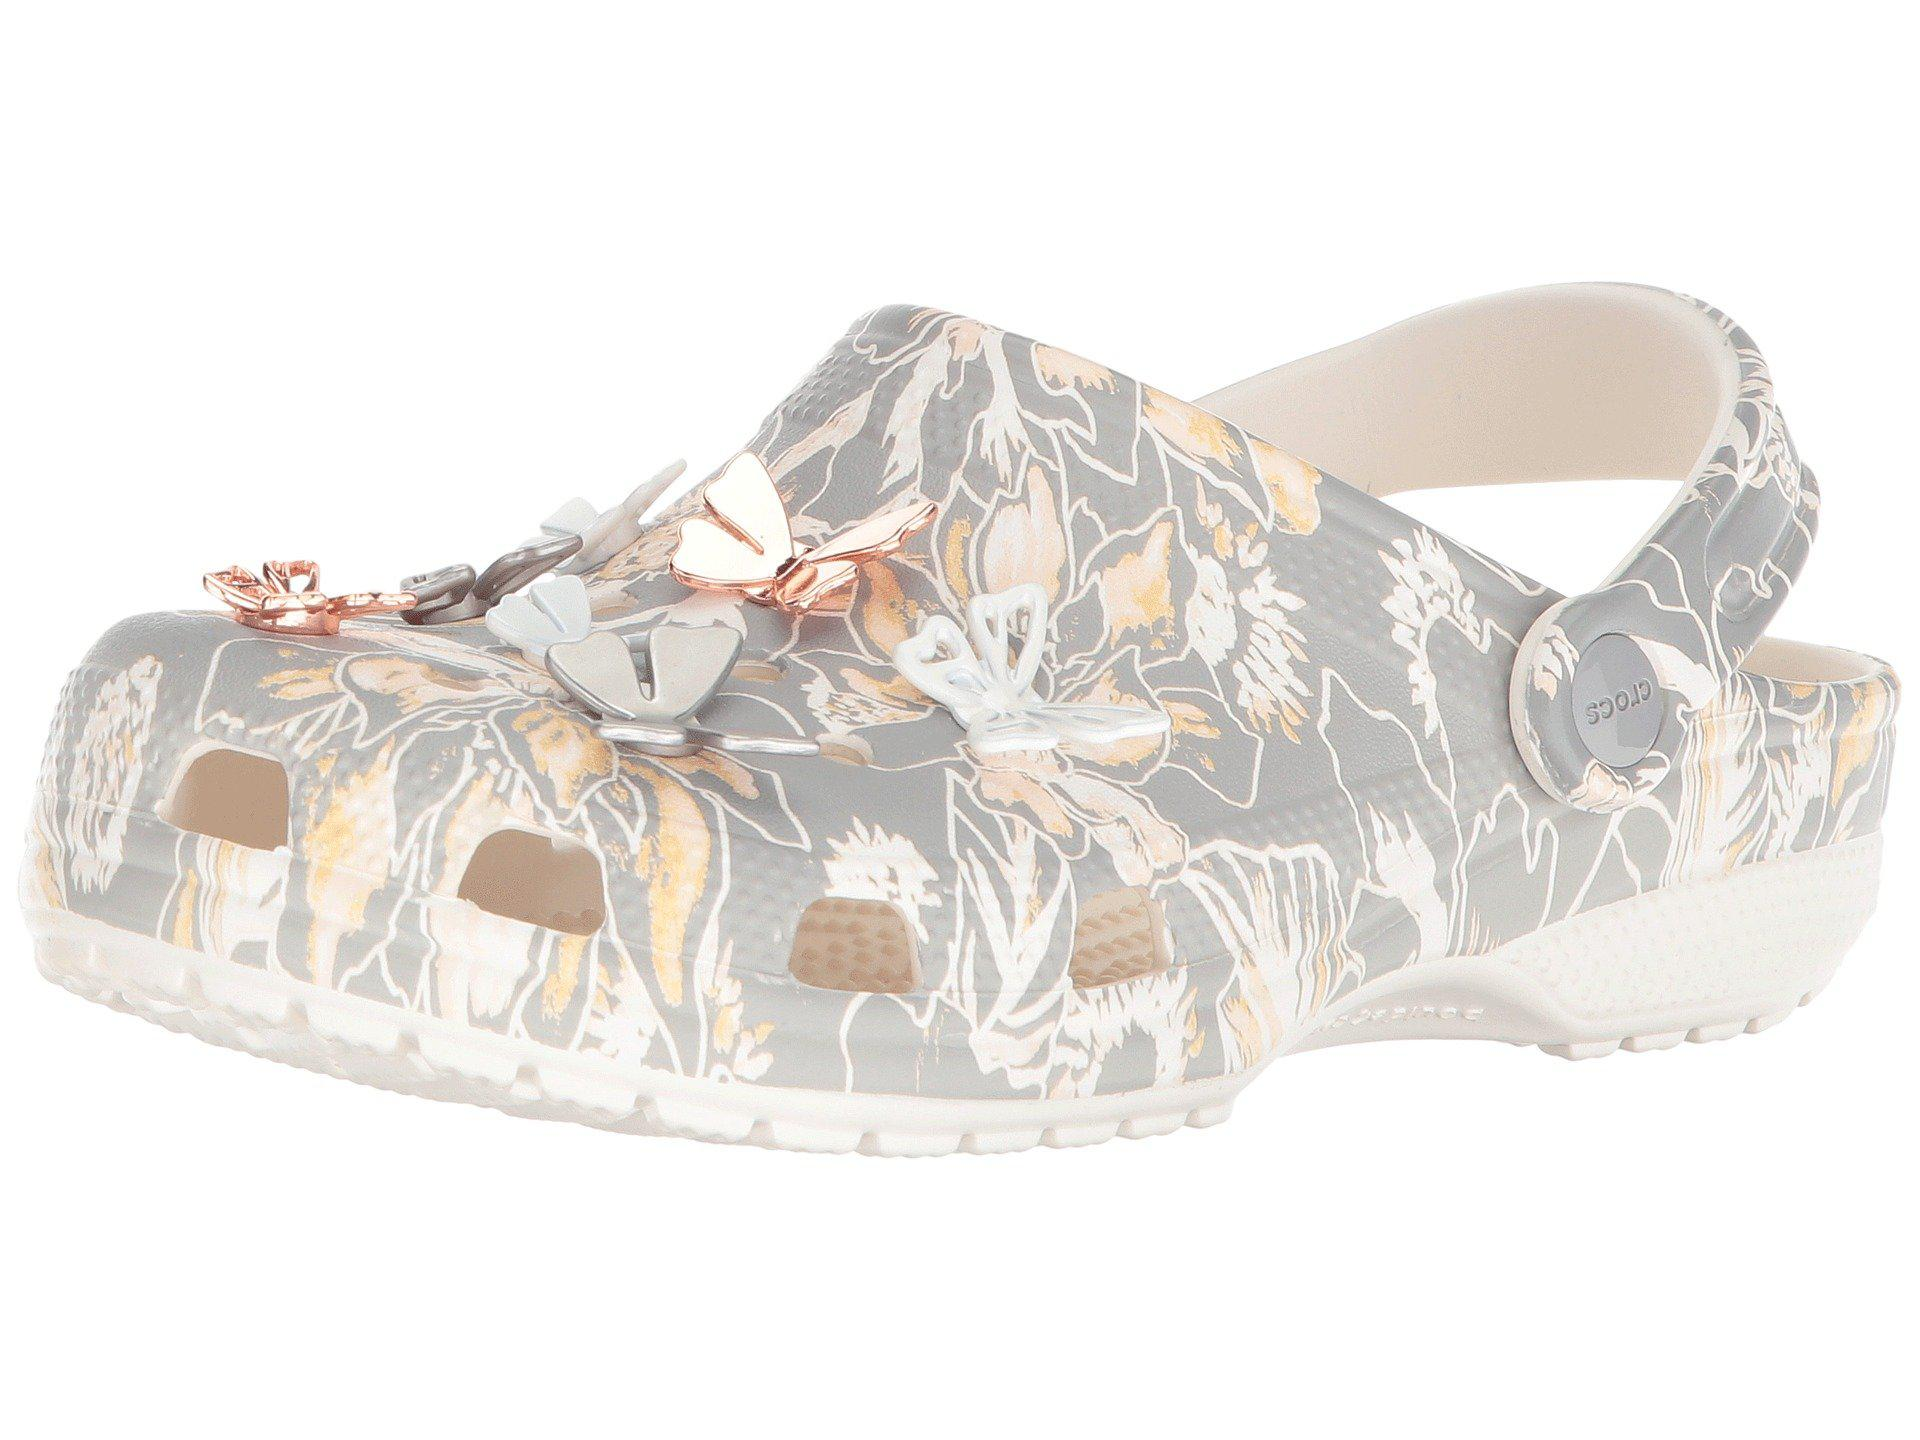 cd60512e2cb Lyst - Crocs™ Classic Botanical Butterfly Clog in Gray - Save 33%